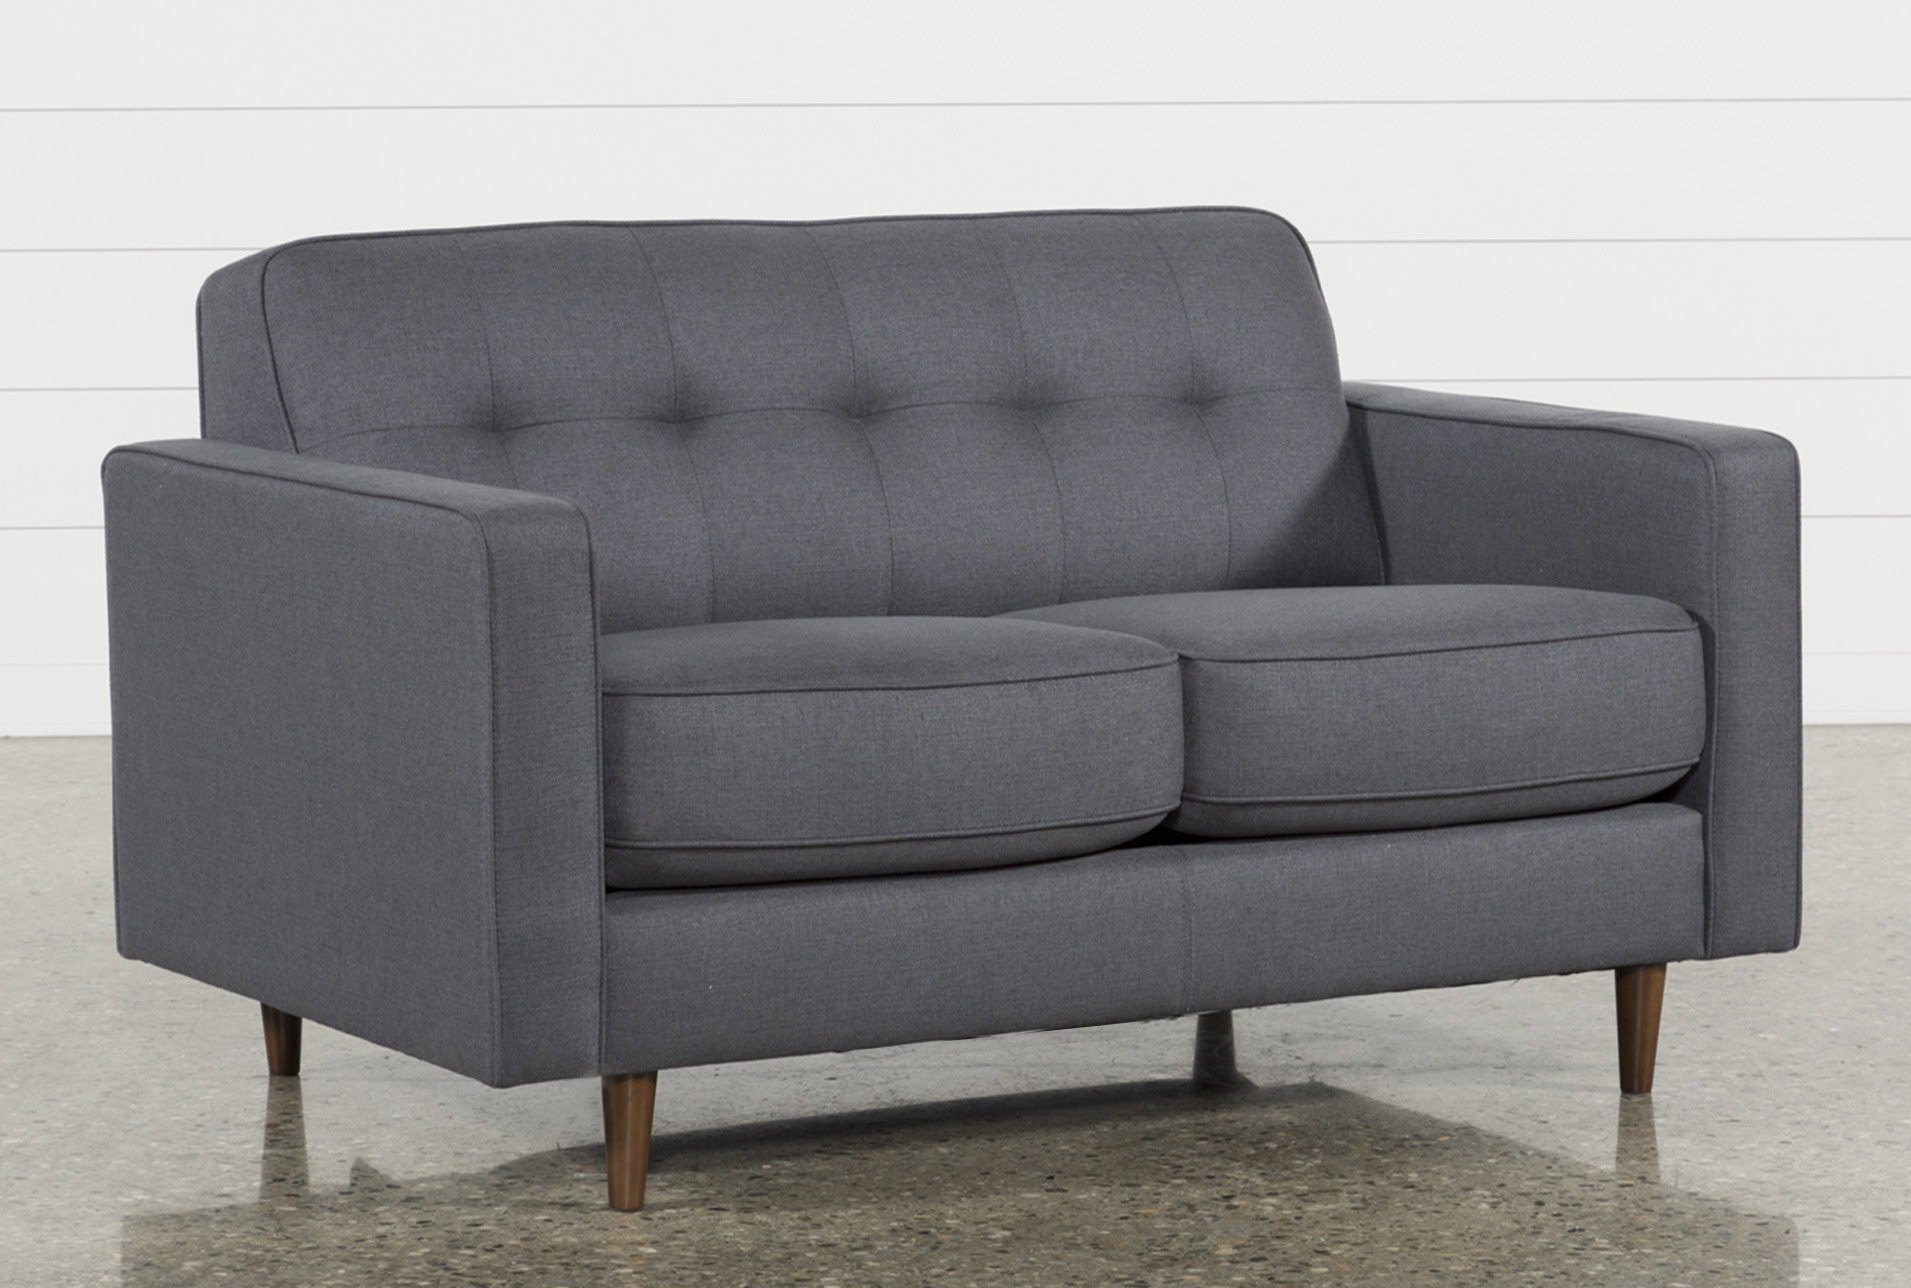 west elm dunham sofa reviews how to clean my myself twin sleeper easy home decorating ideas